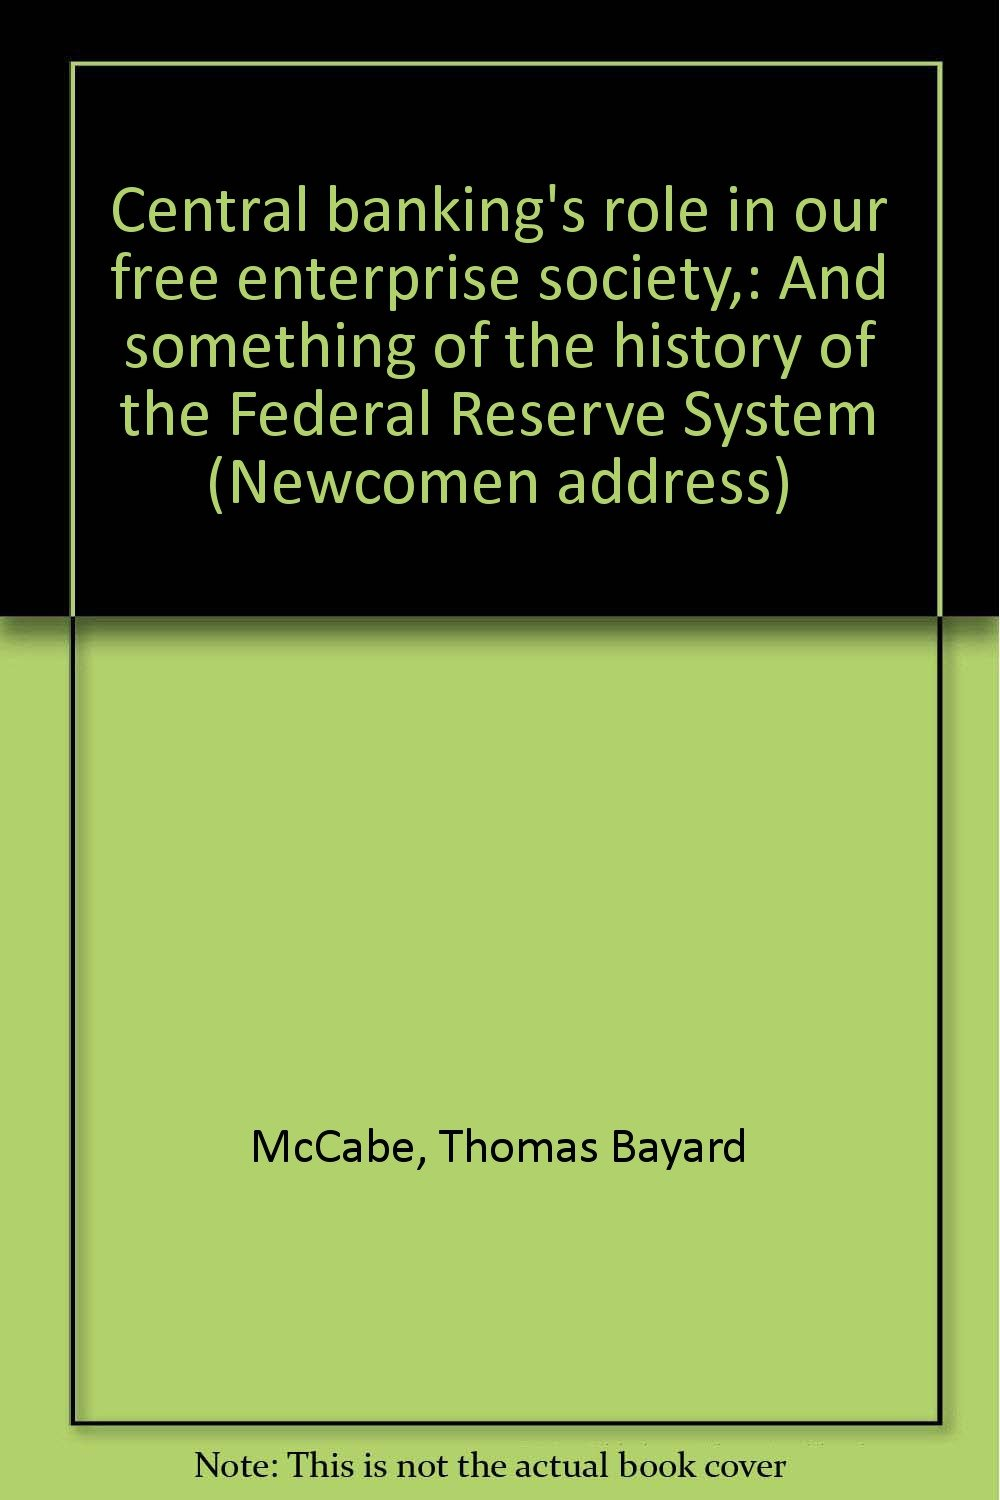 Central banking's role in our free enterprise society, : And